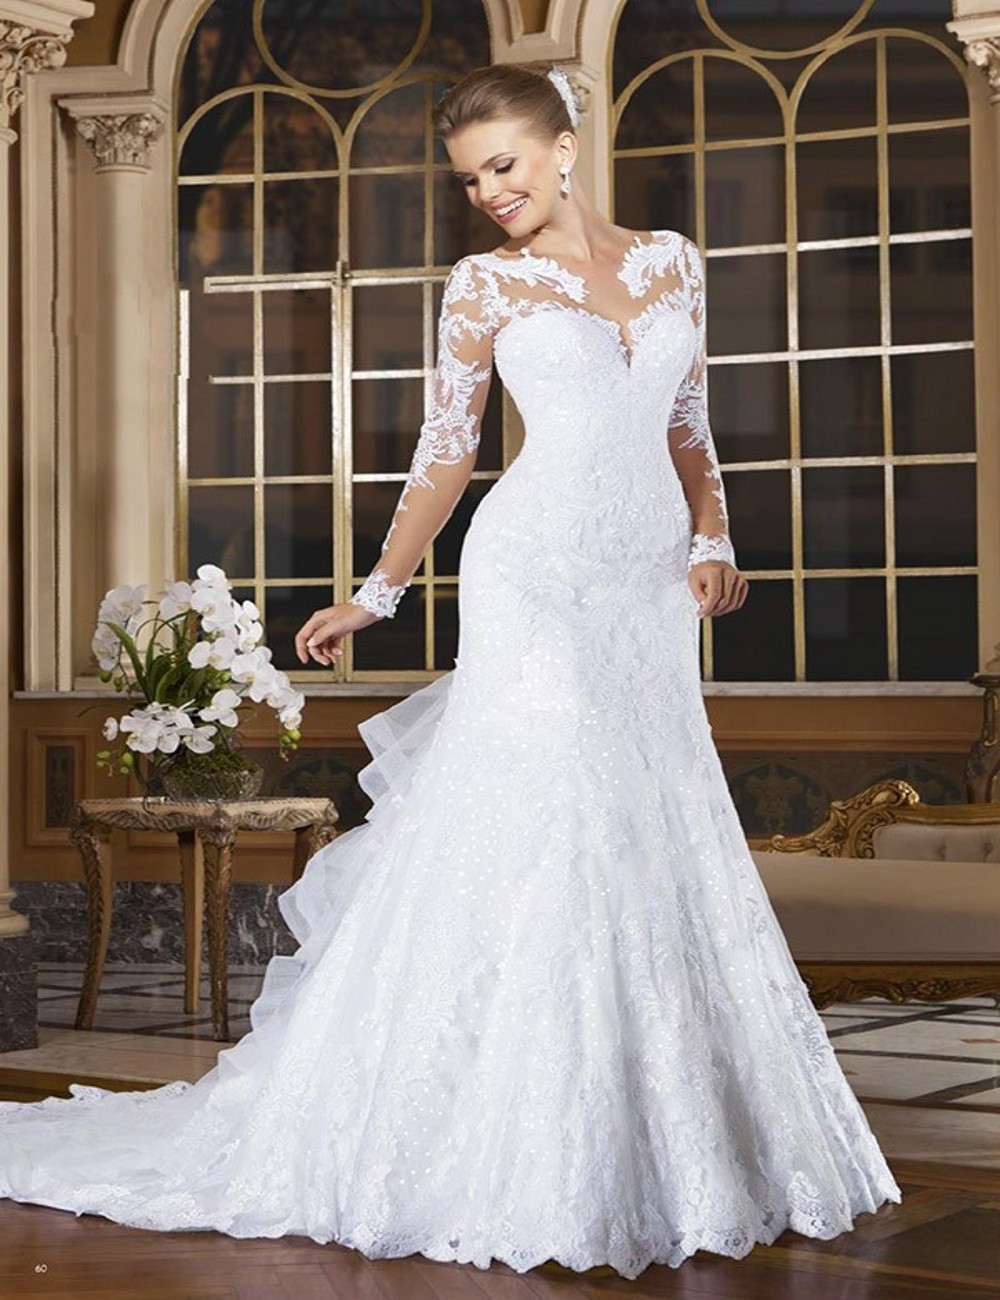 Lace Wedding Dresses  Canada : Buy wholesale wedding gowns canada from china